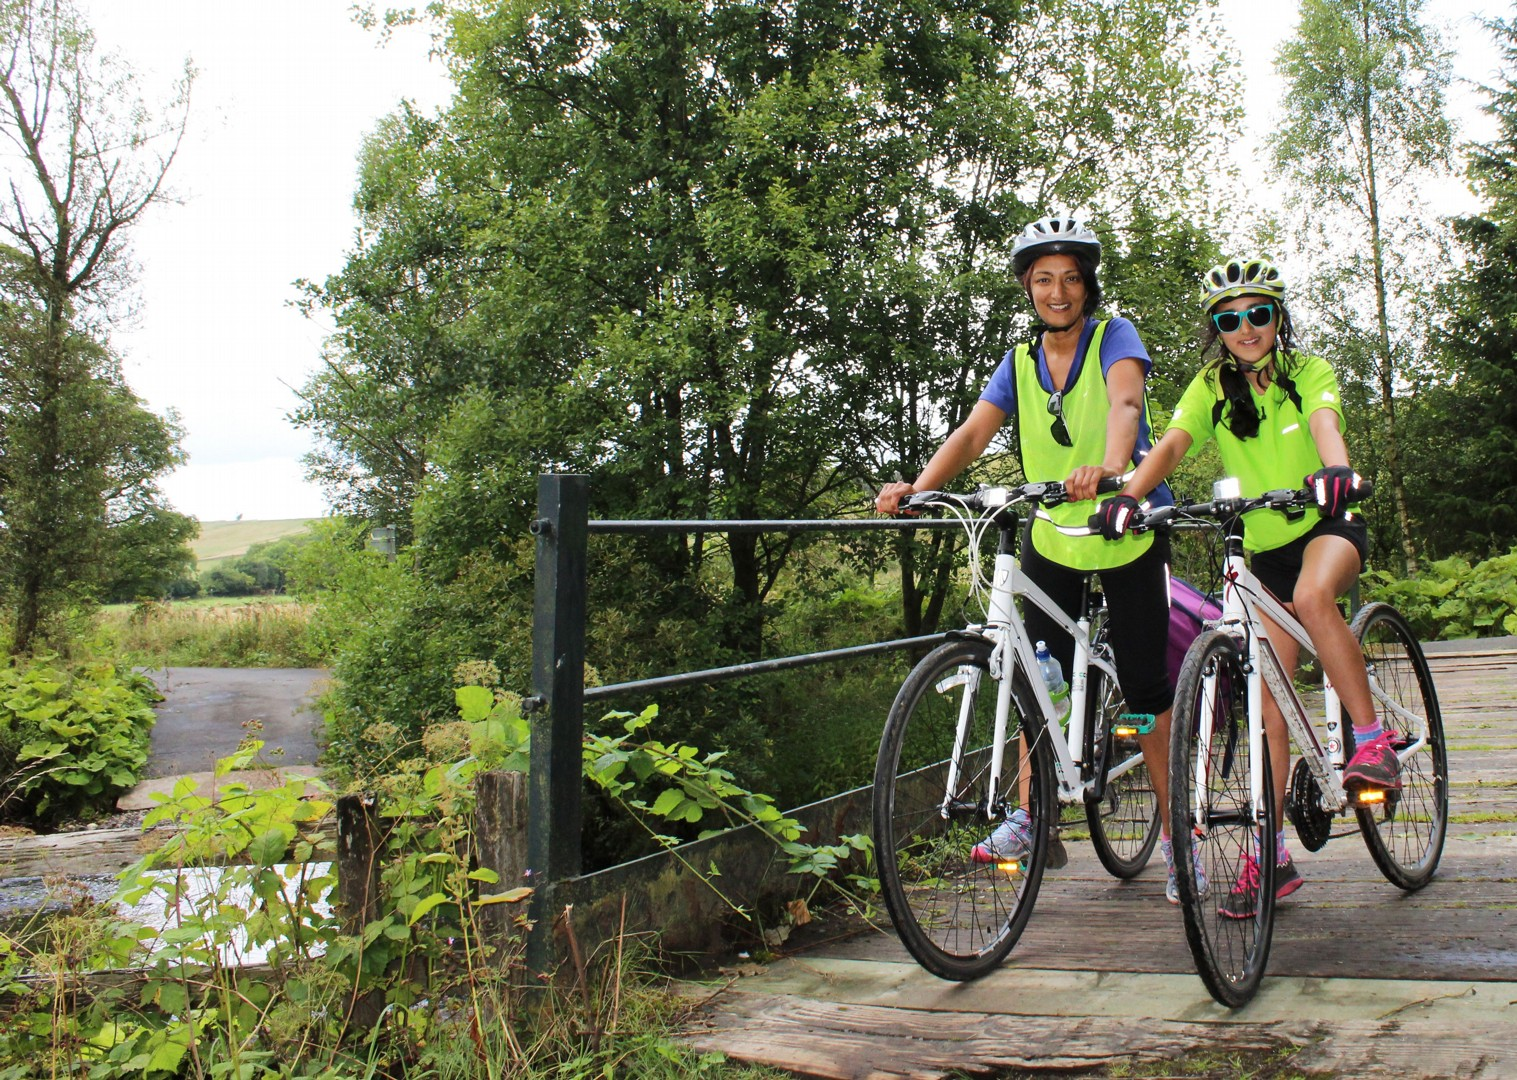 supported-guide-family-cycling-holiday-uk.jpg - UK - Hadrian's Cycleway 4 Day - Supported Family Cycling Holiday - Family Cycling